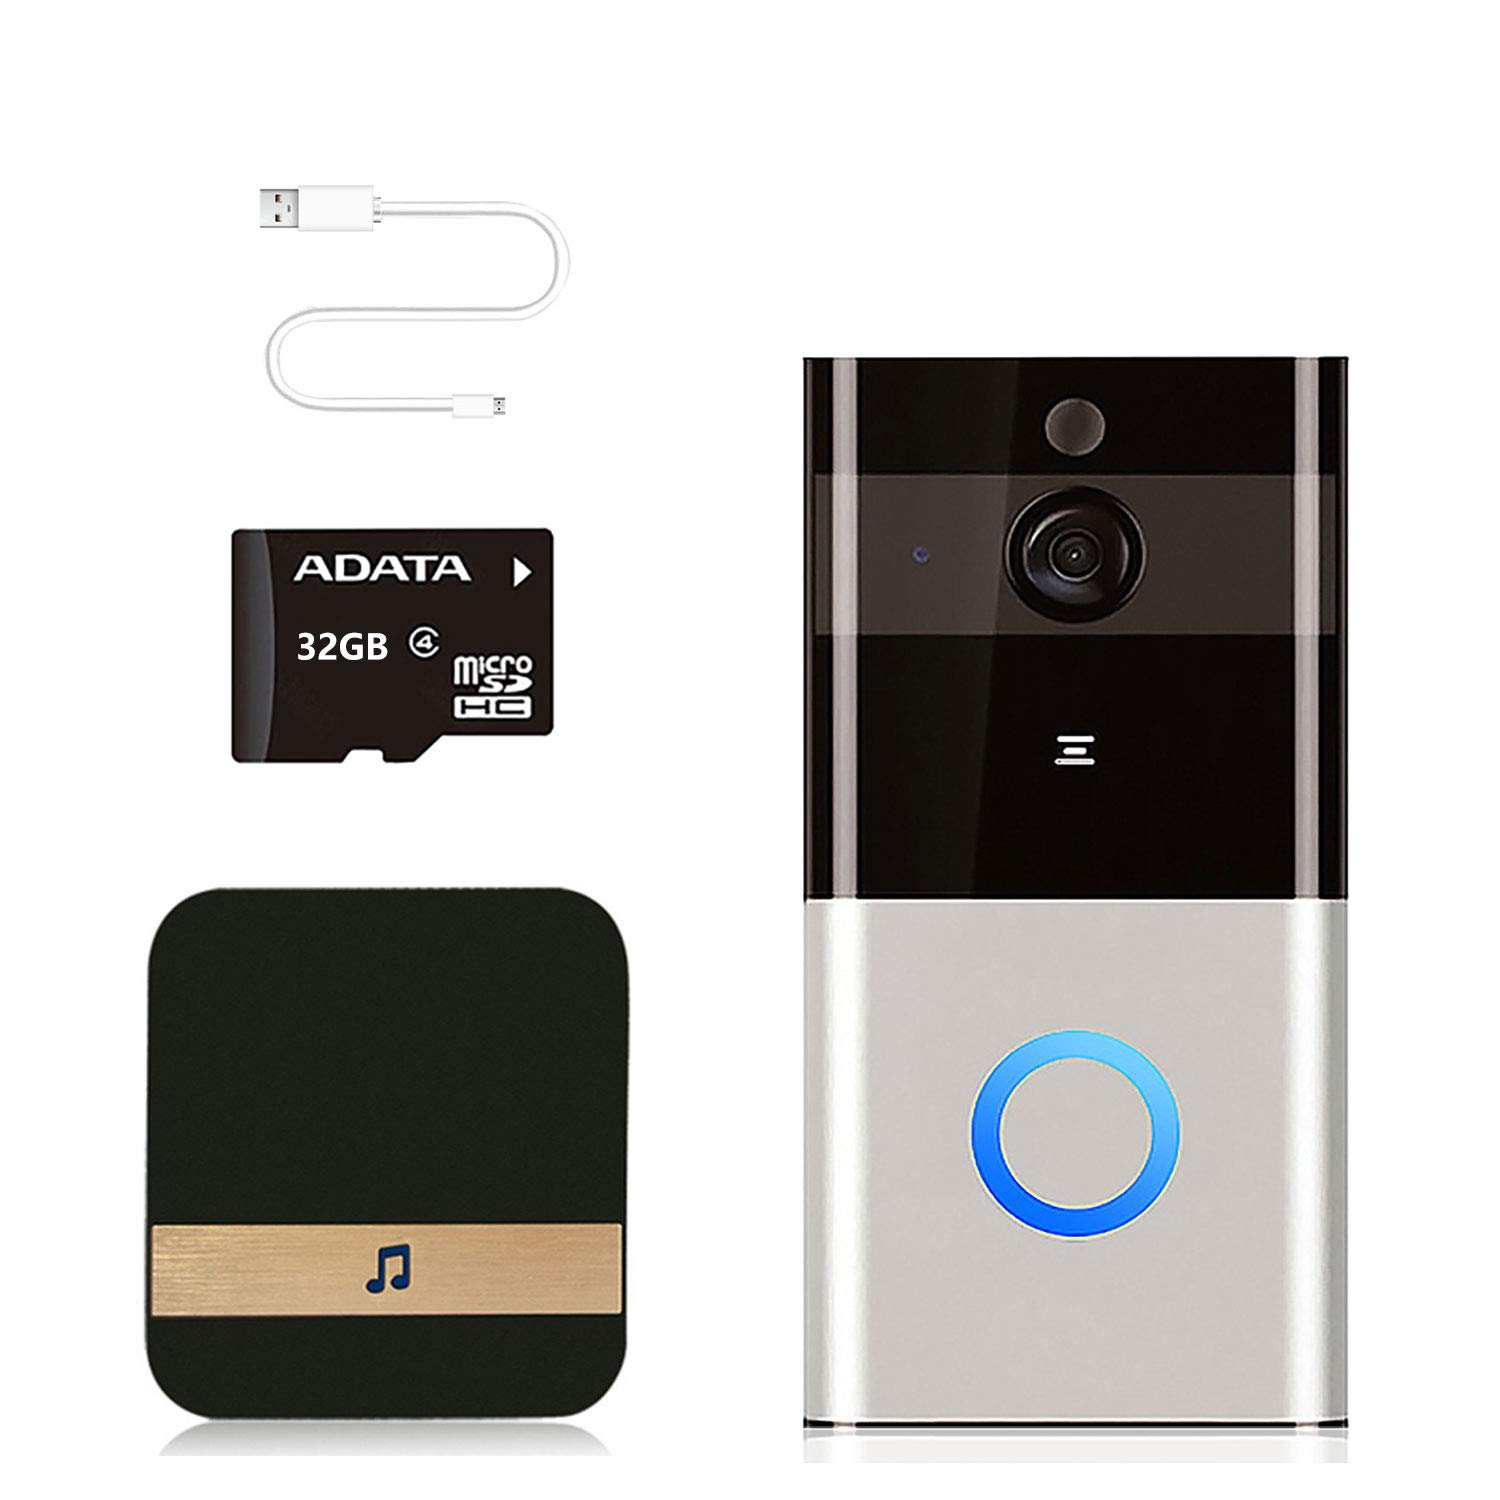 Video Doorbell Camera Wireless 1080P HD Smart WiFi Doorbell with Door Chime, 2-Way Audio & 32G Memory Card, Night Vision, IP65 Waterproof, Advanced Motion Detection Visual for Home Security